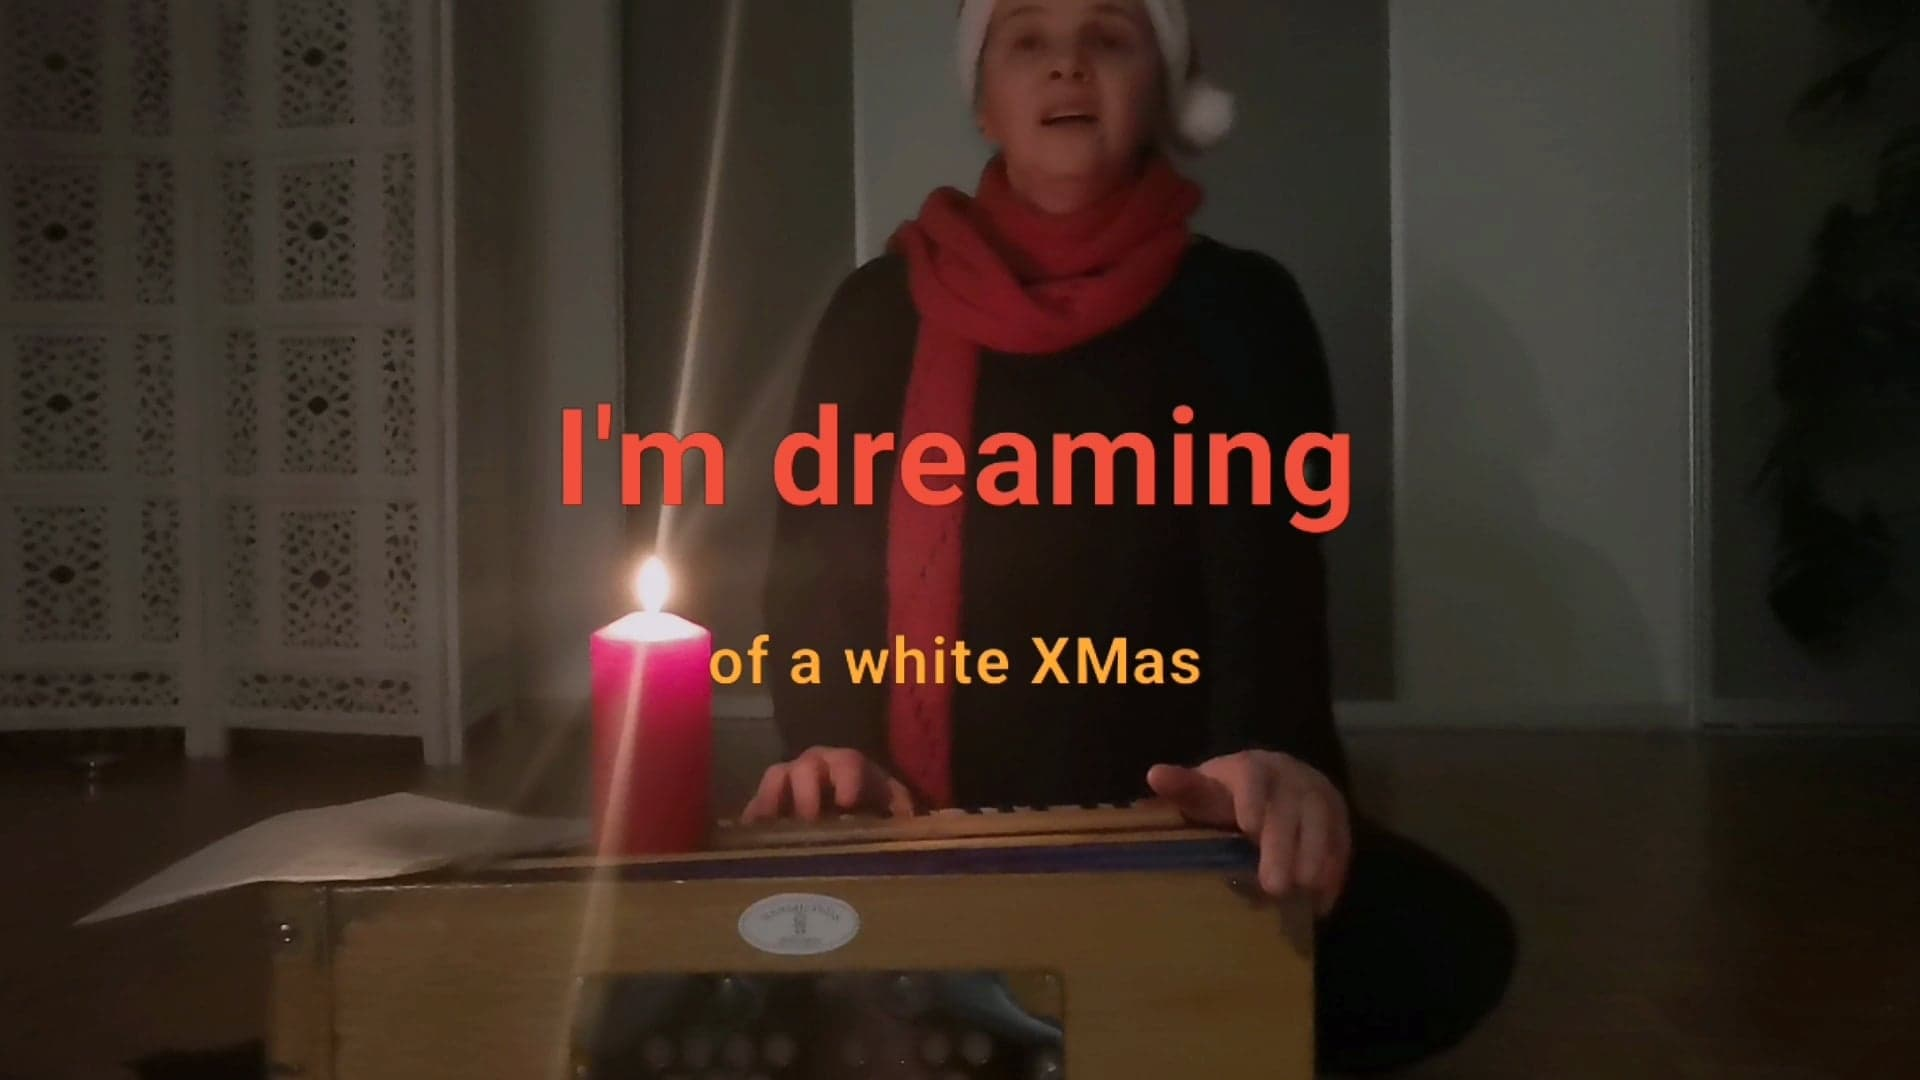 I'm dreaming of a white Xmas